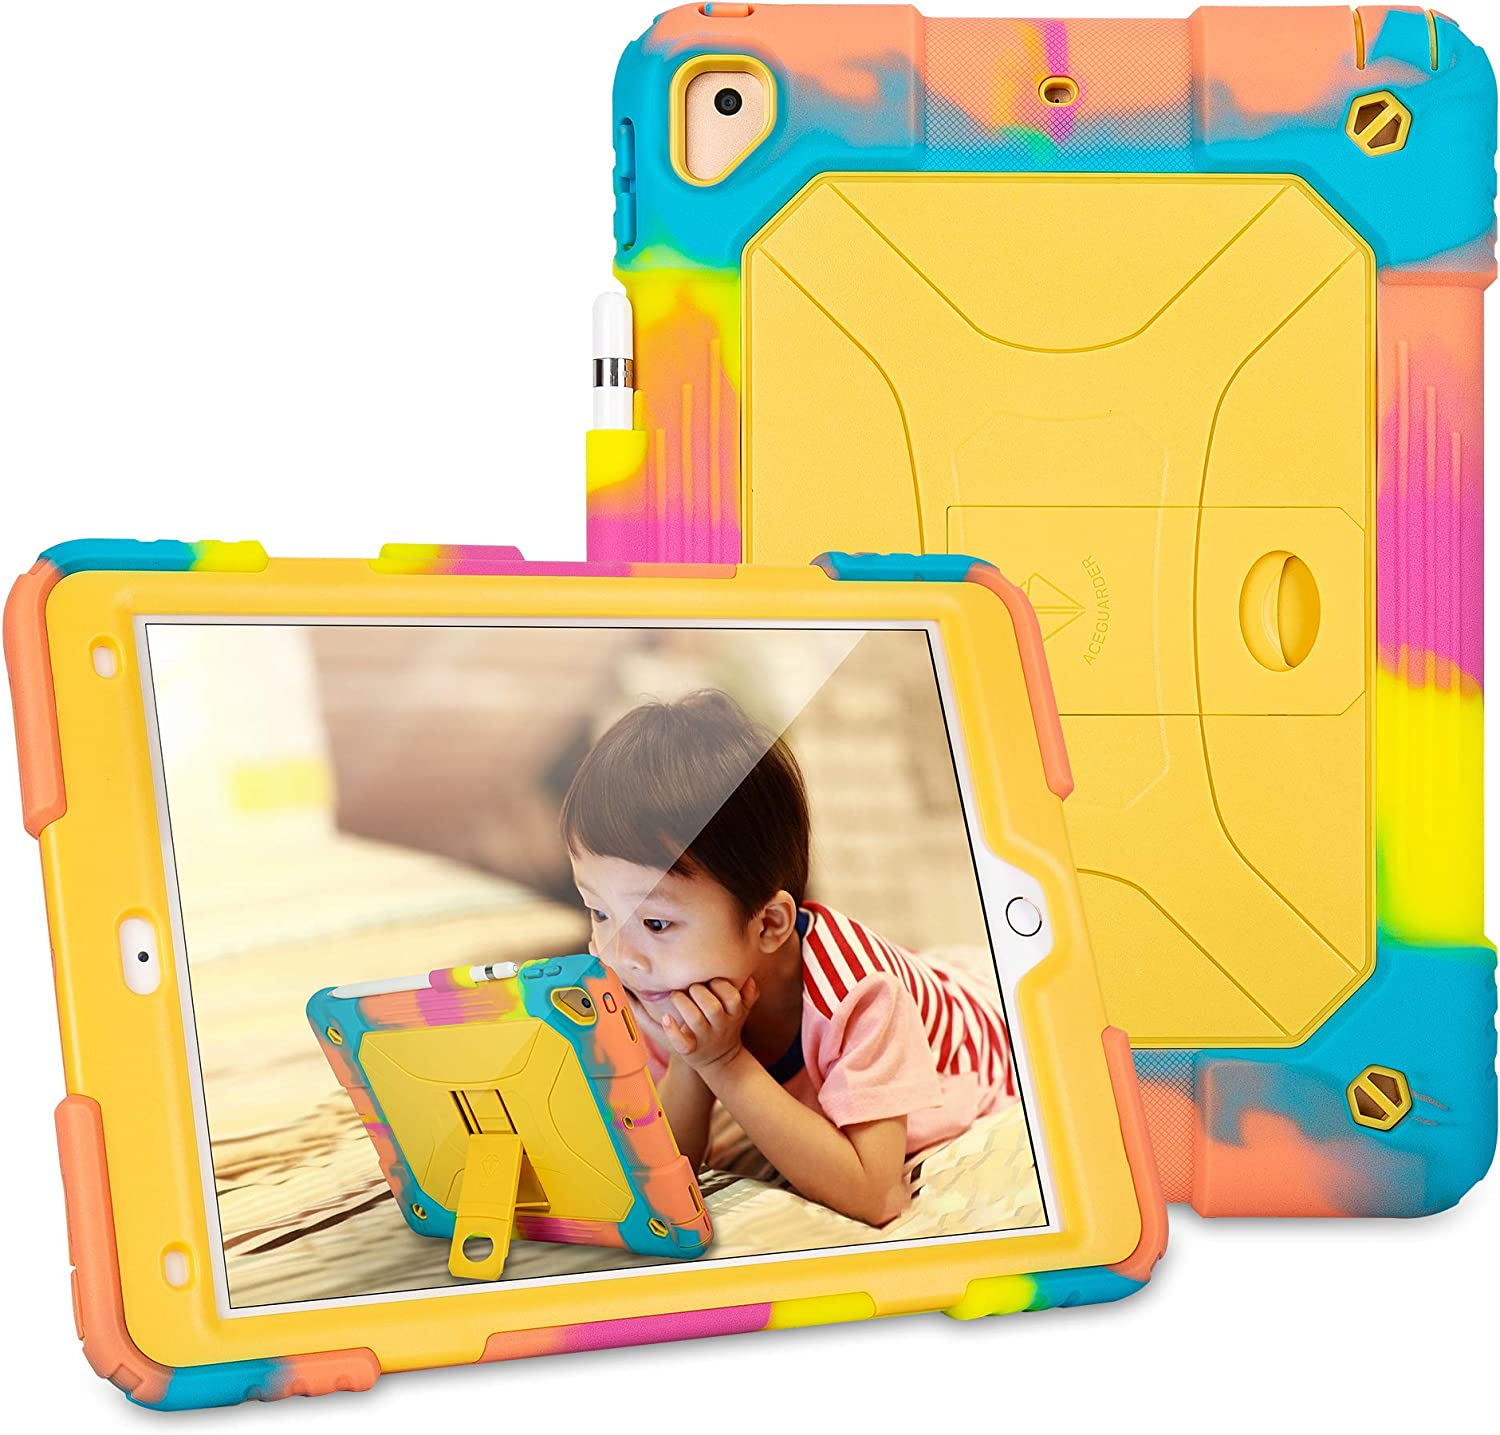 iPad 10.2/iPad 10.5 Case 10.2 inch 2019 2020 Releases Case Kickstand Soft Silicone Shockproof Protective Case for Kids for iPad 7th Generation 2019 2020 - Ice/Yellow